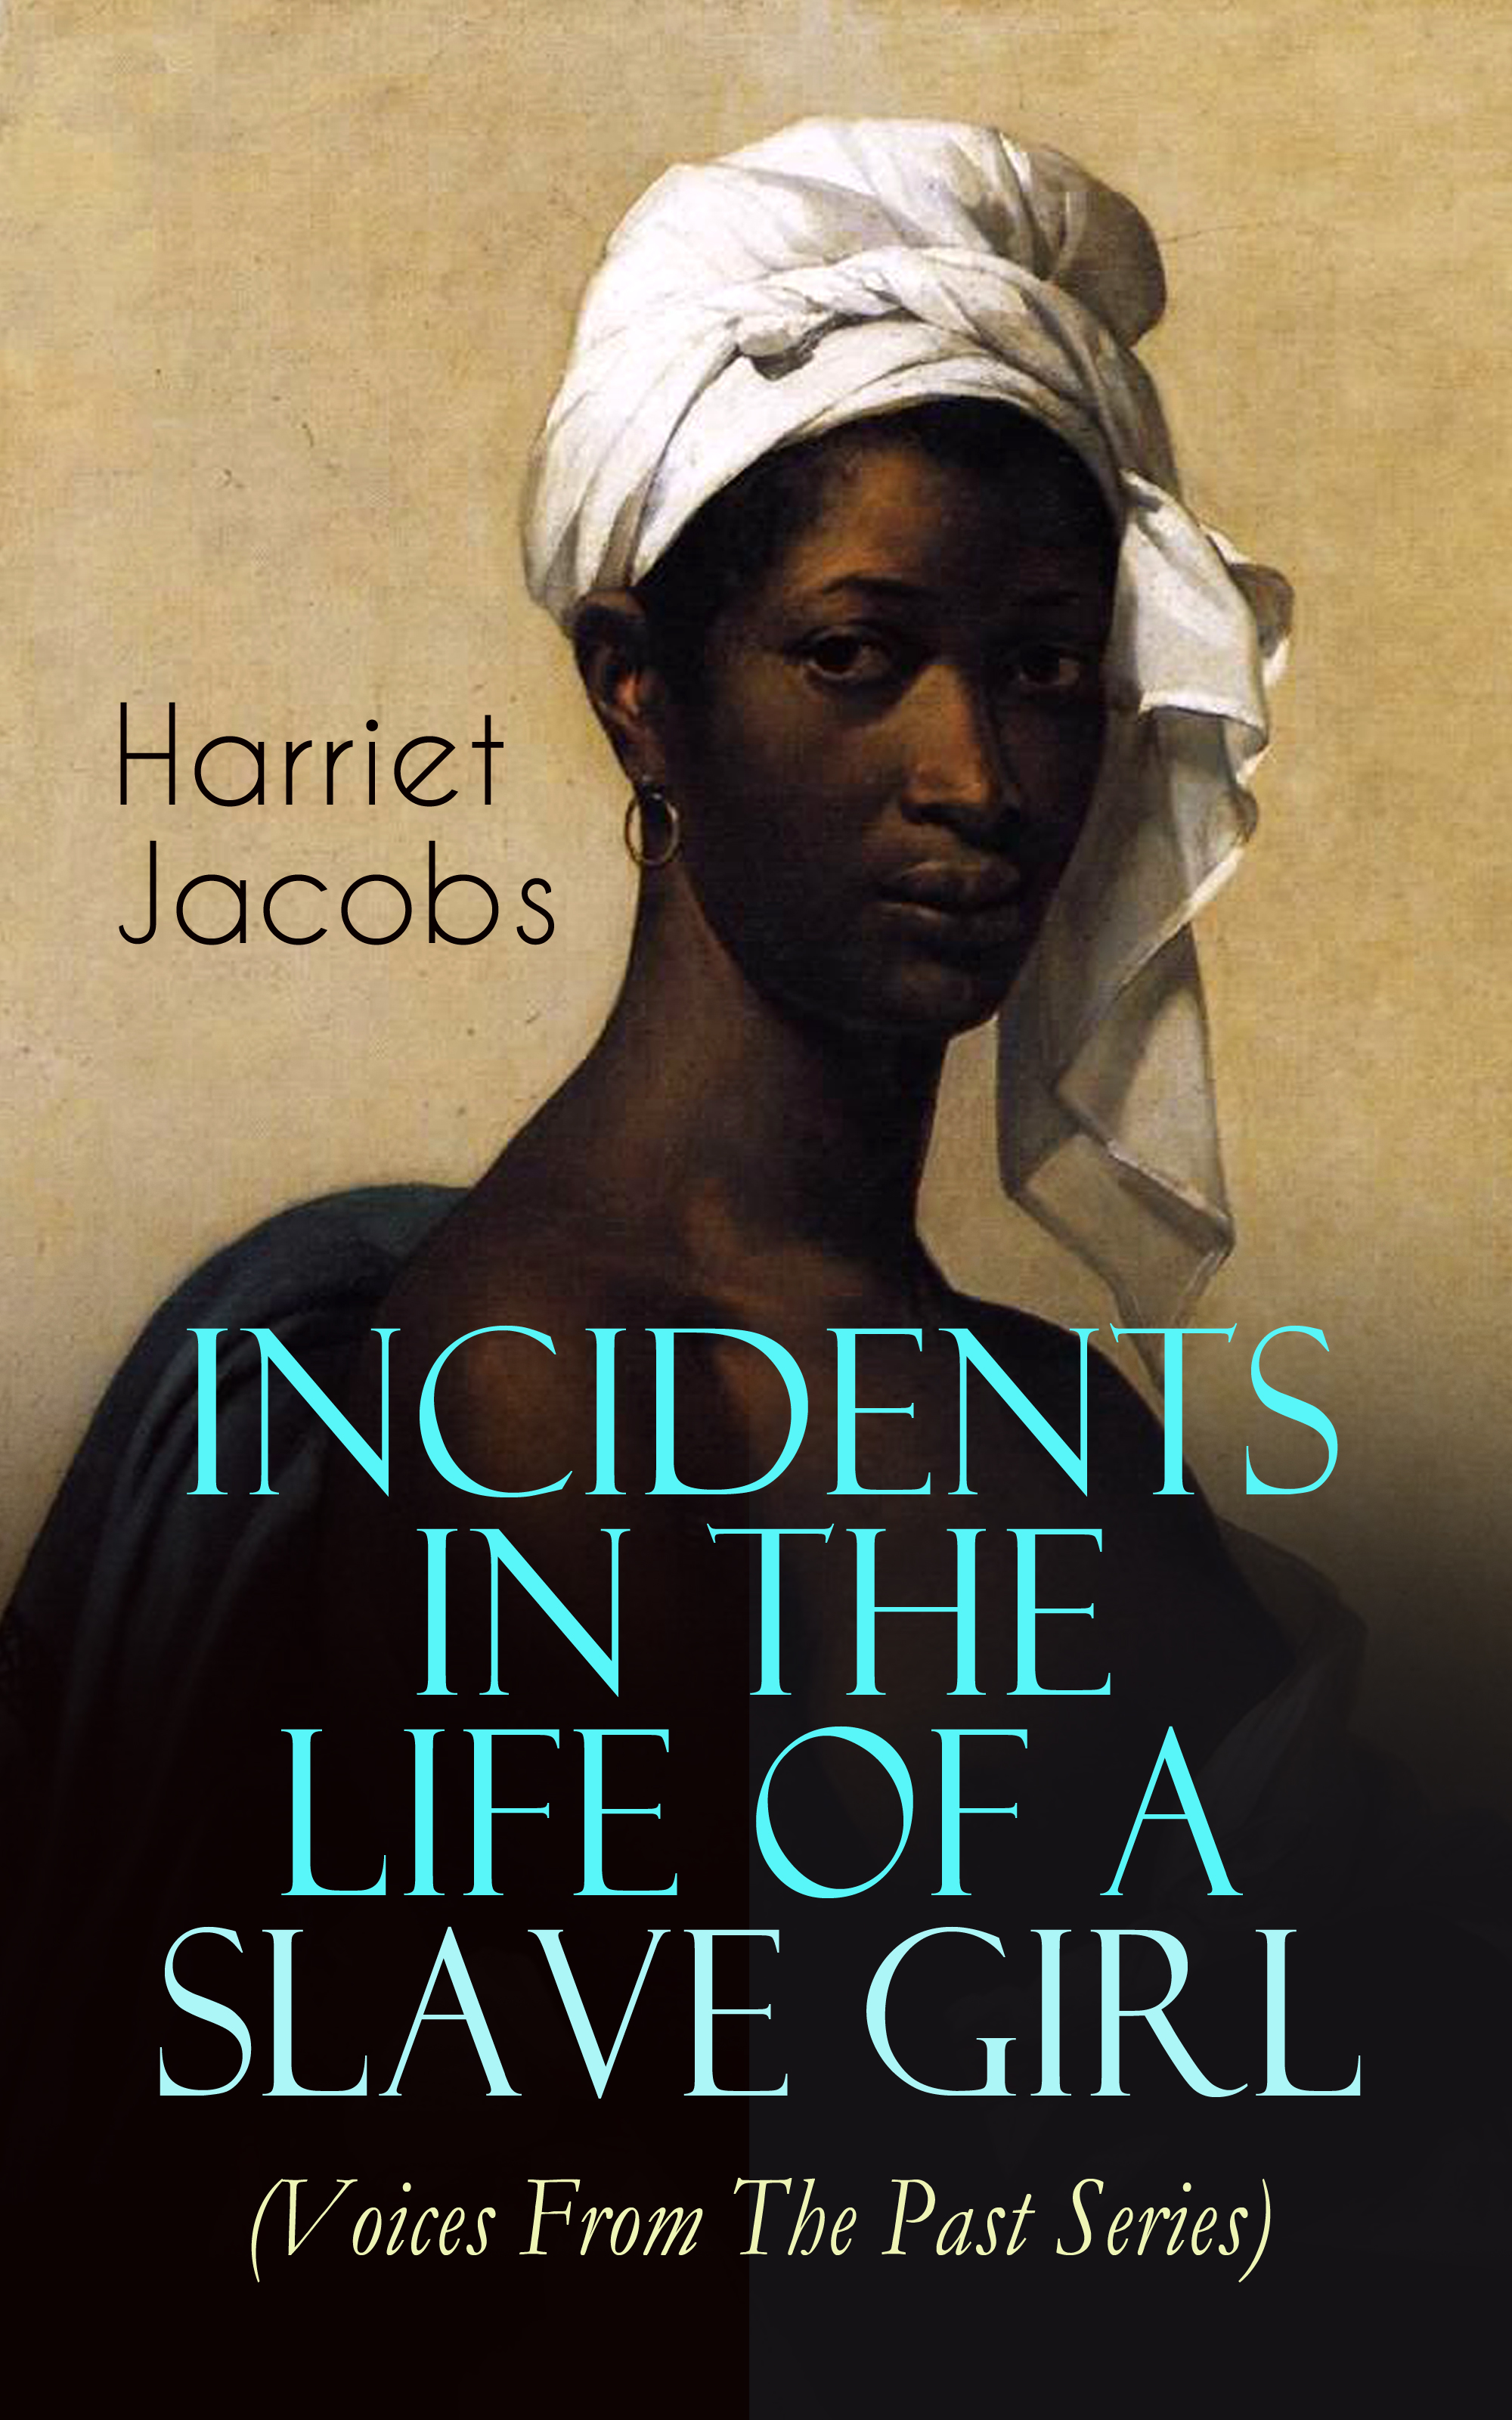 Harriet Jacobs Incidents in the Life of a Slave Girl (Voices From The Past Series) linda clowers the voices of trees